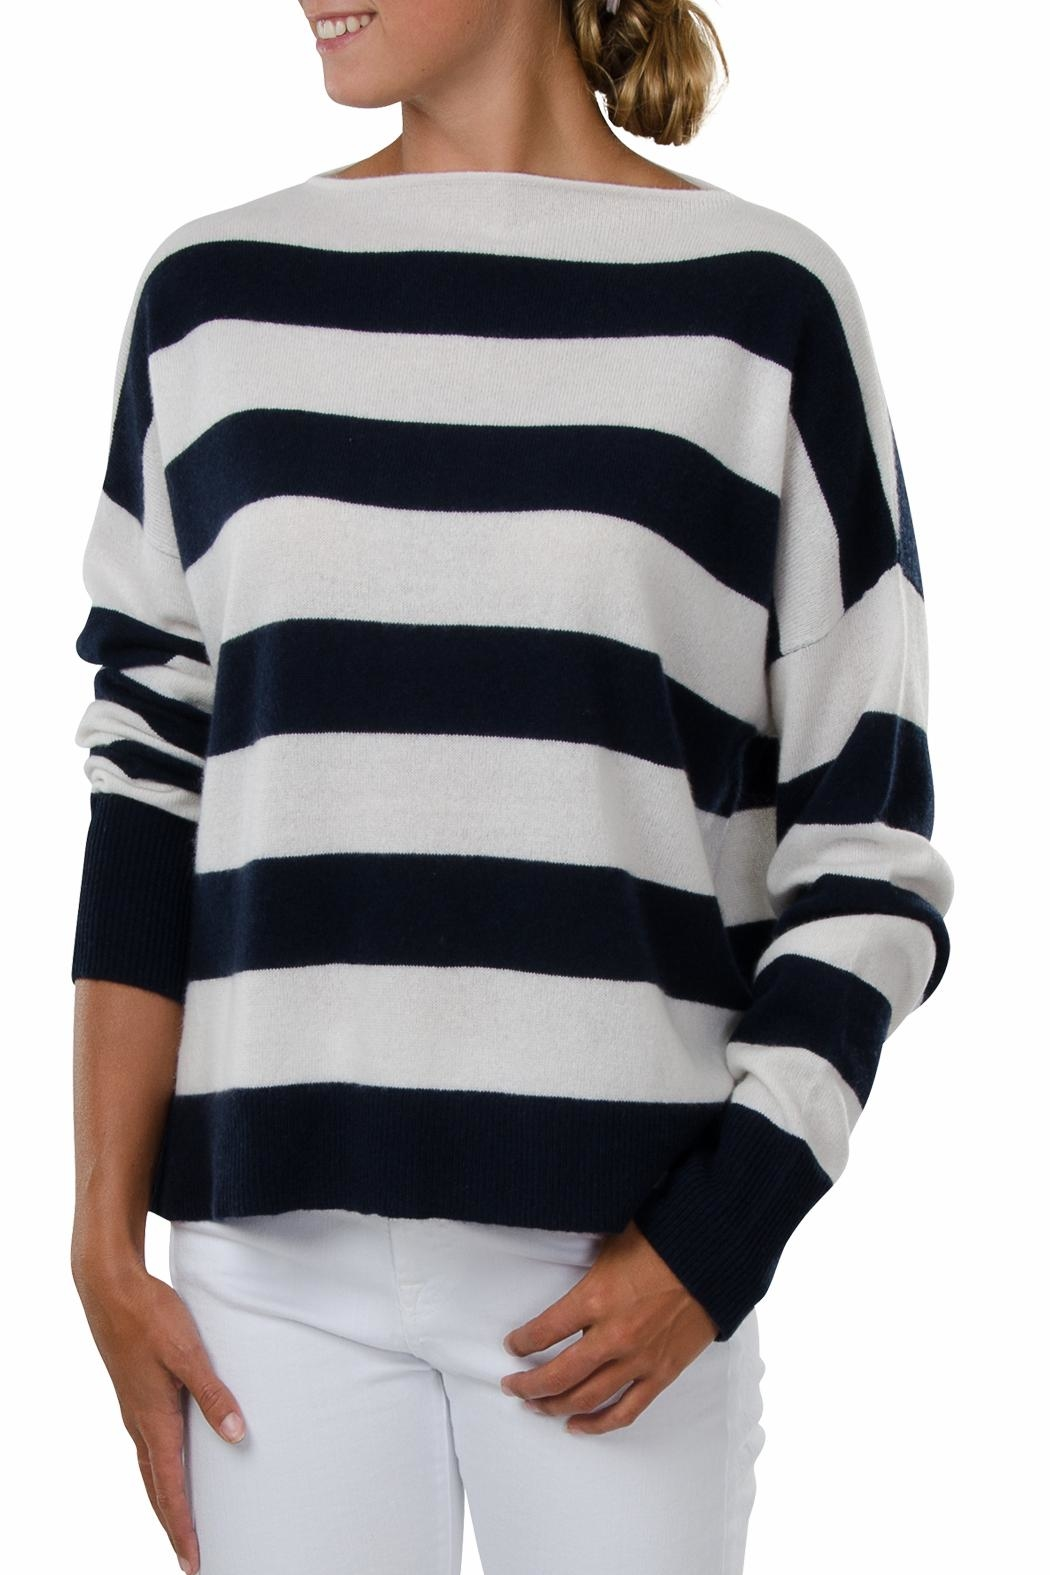 Cortland Park Cashmere Newport Cashmere Sweater - Front Cropped Image